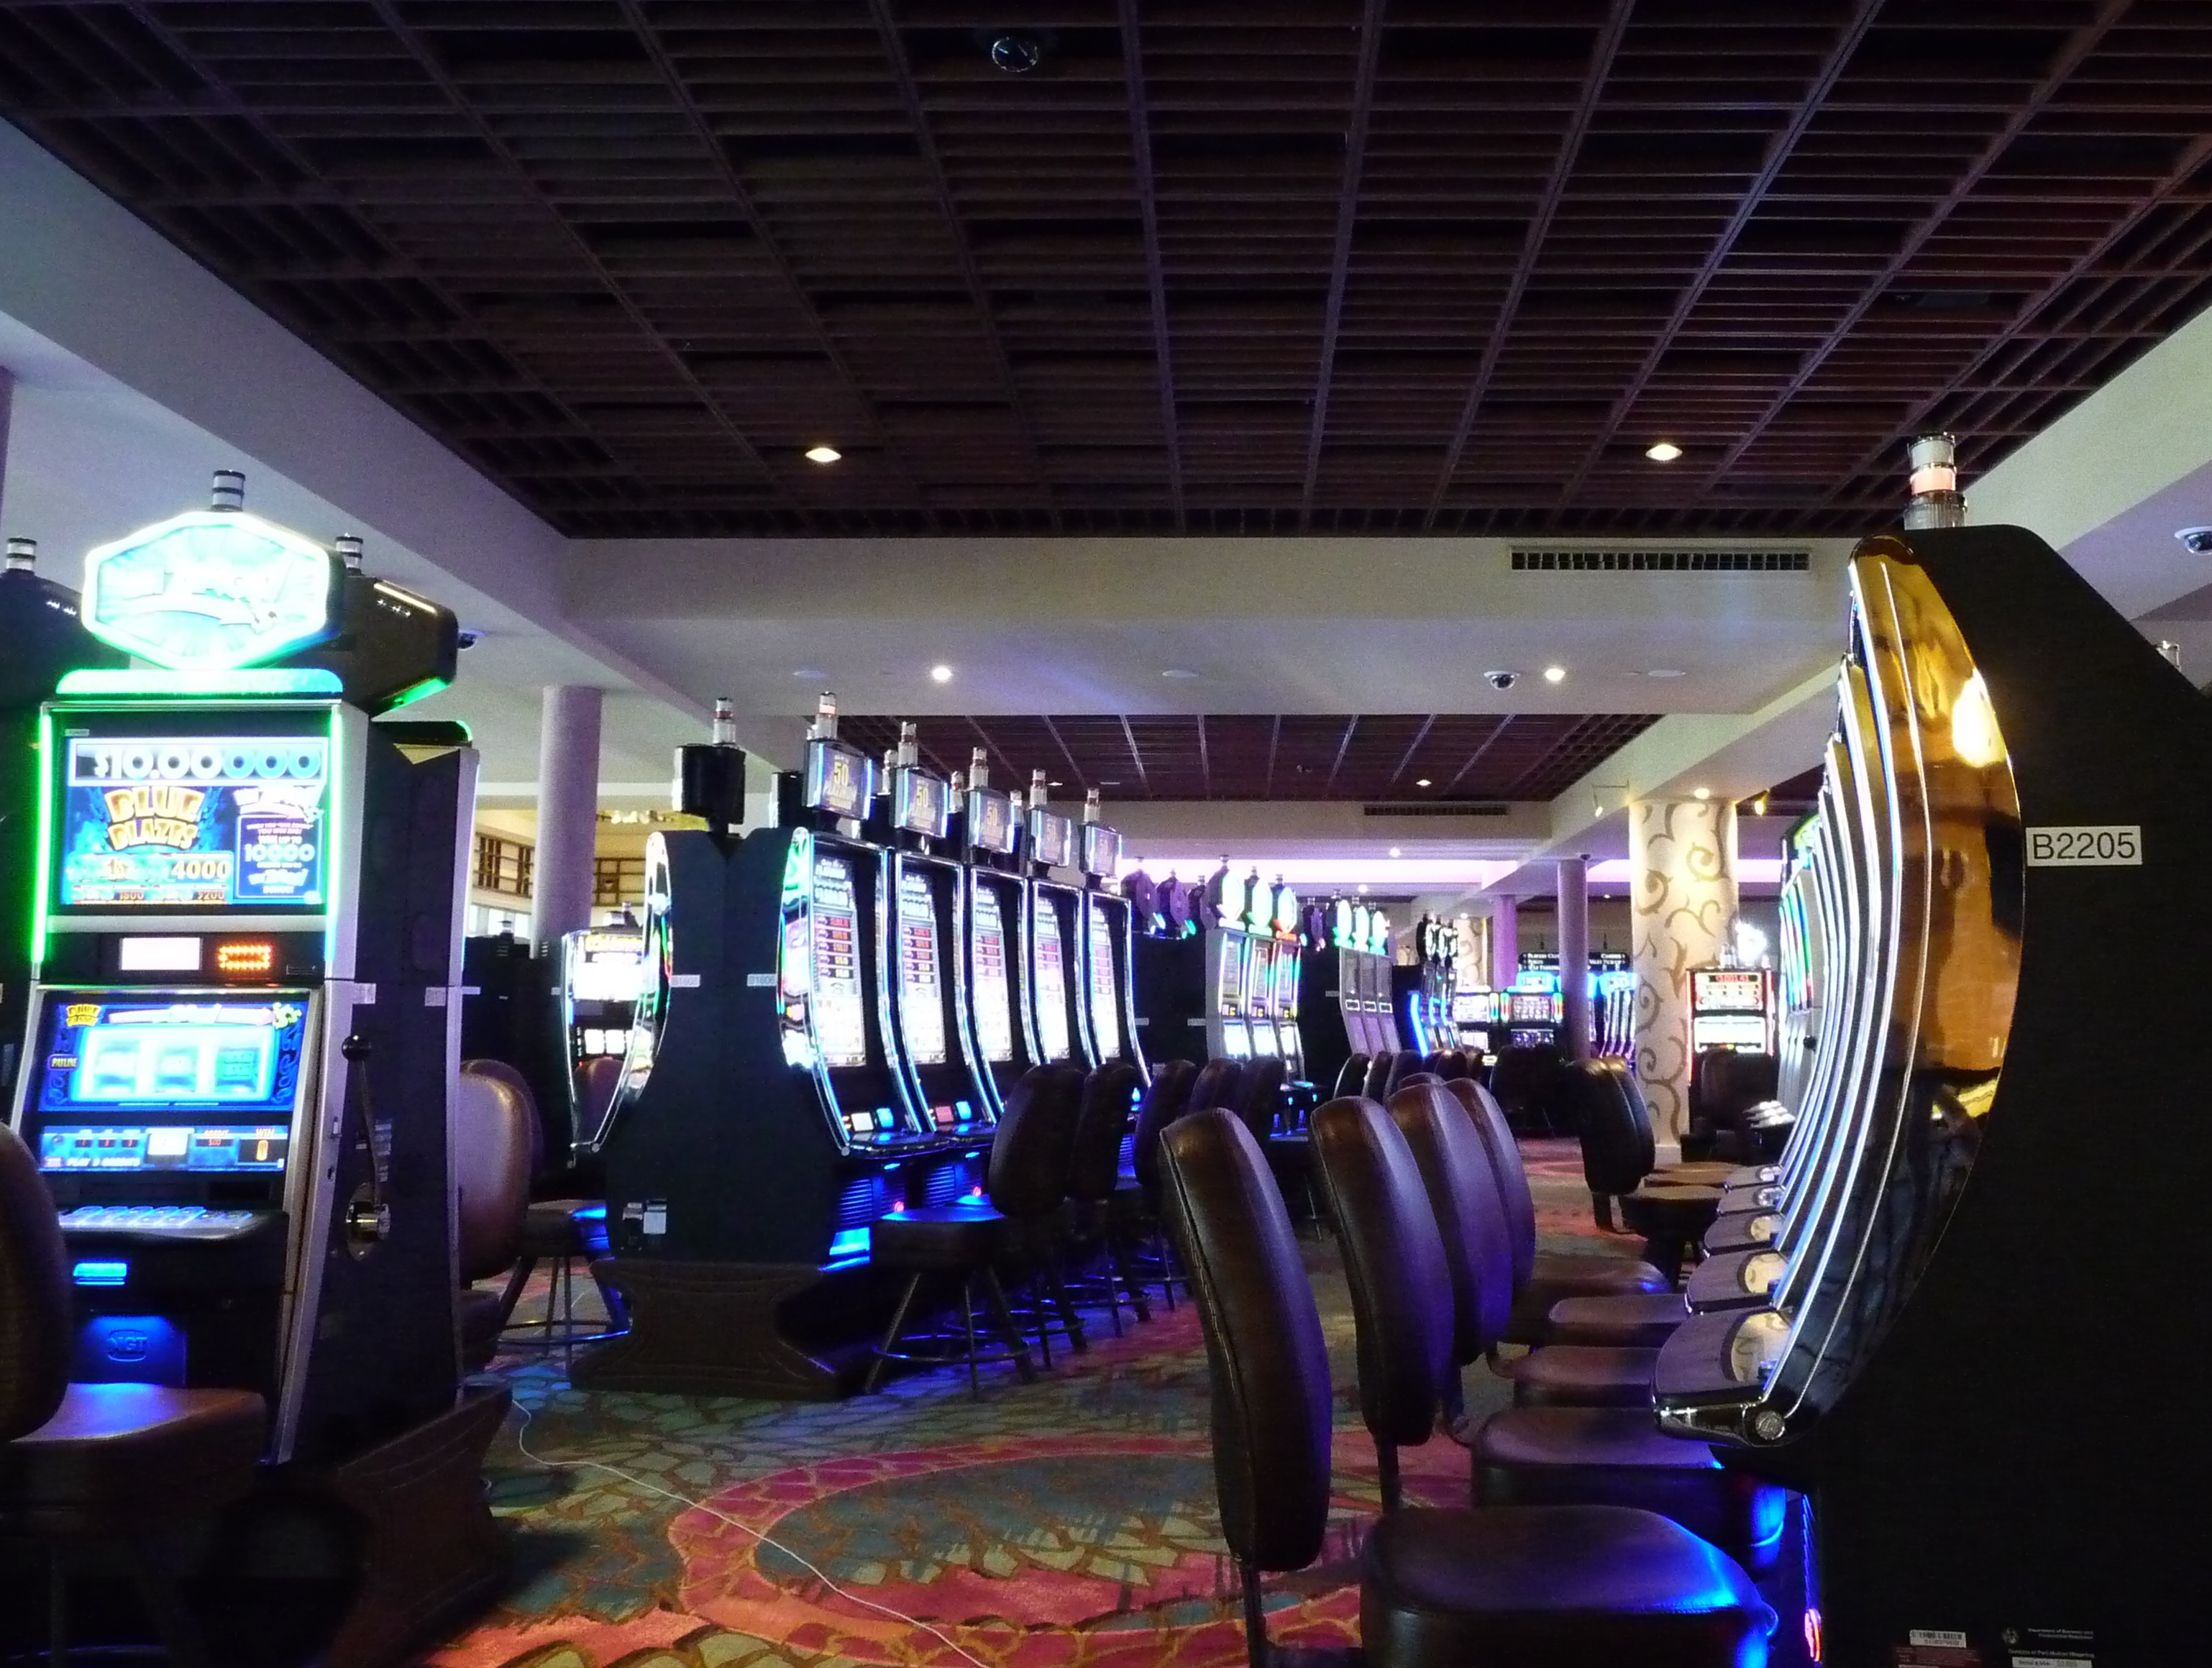 Hialeah Park Casino Acoustical Av Design By Marsh Pmk Theater Structured Wiring Home Networking Orlando Central Florida